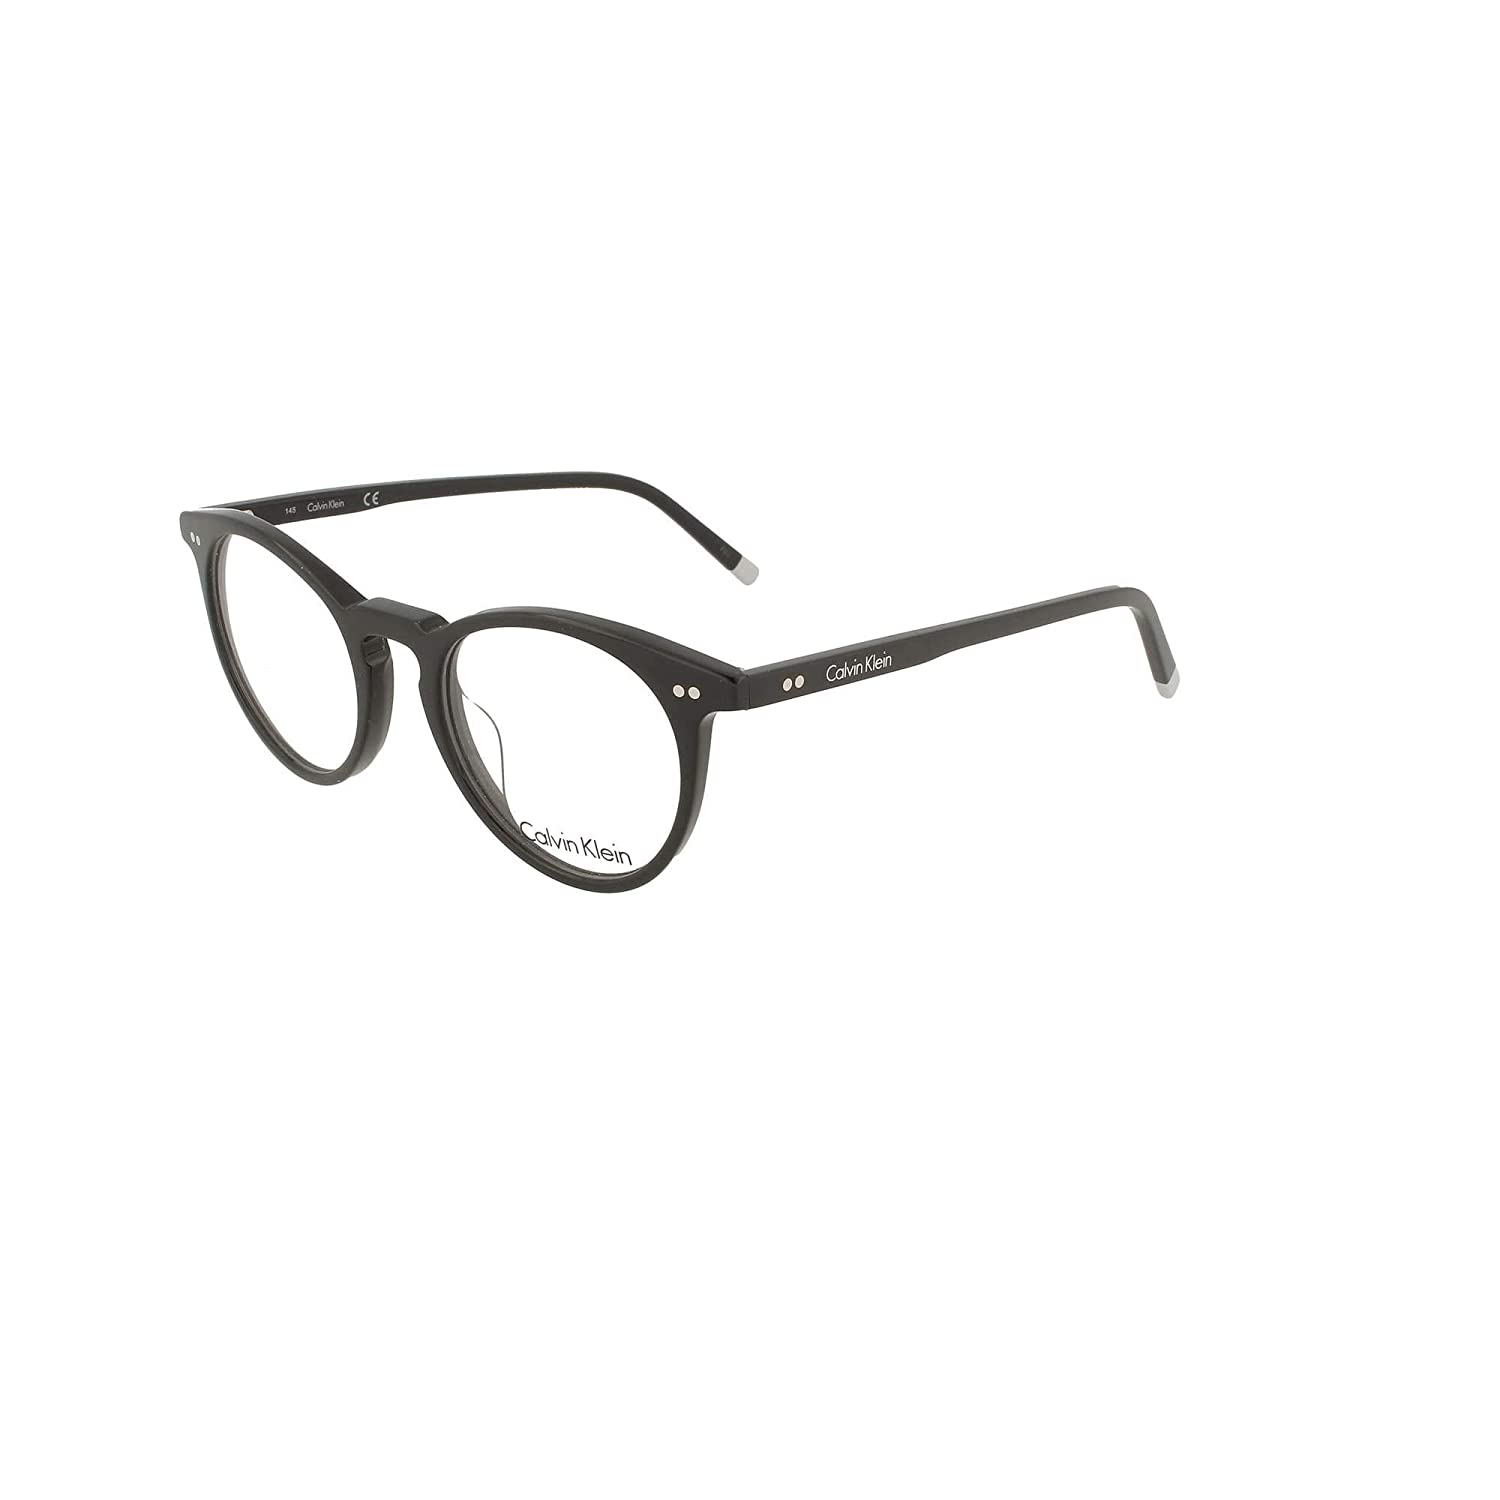 0928cdc0ca6 Eyeglasses CK 5937 001 BLACK at Amazon Men s Clothing store